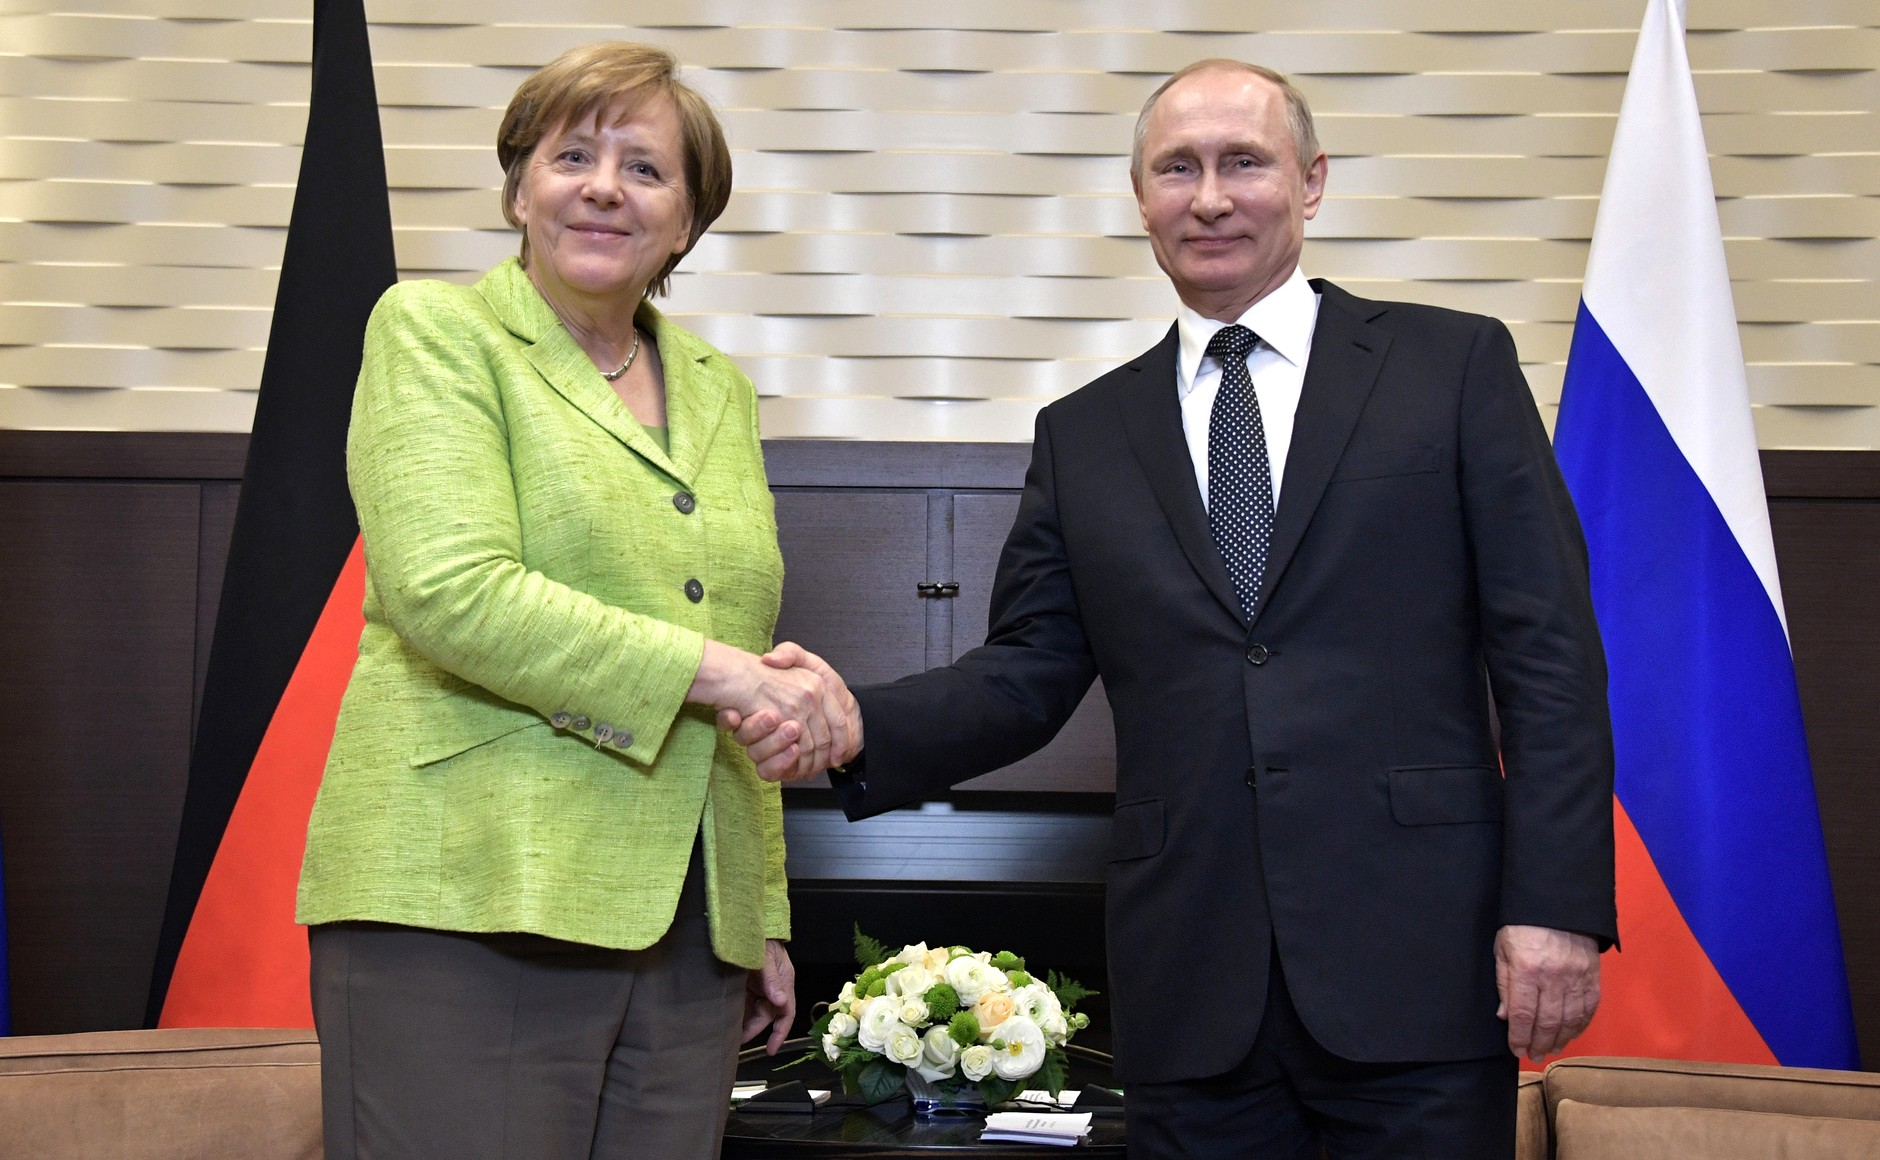 German Chancellor Angela Merkel meets with Russian President Vladimir Putin in Sochi.